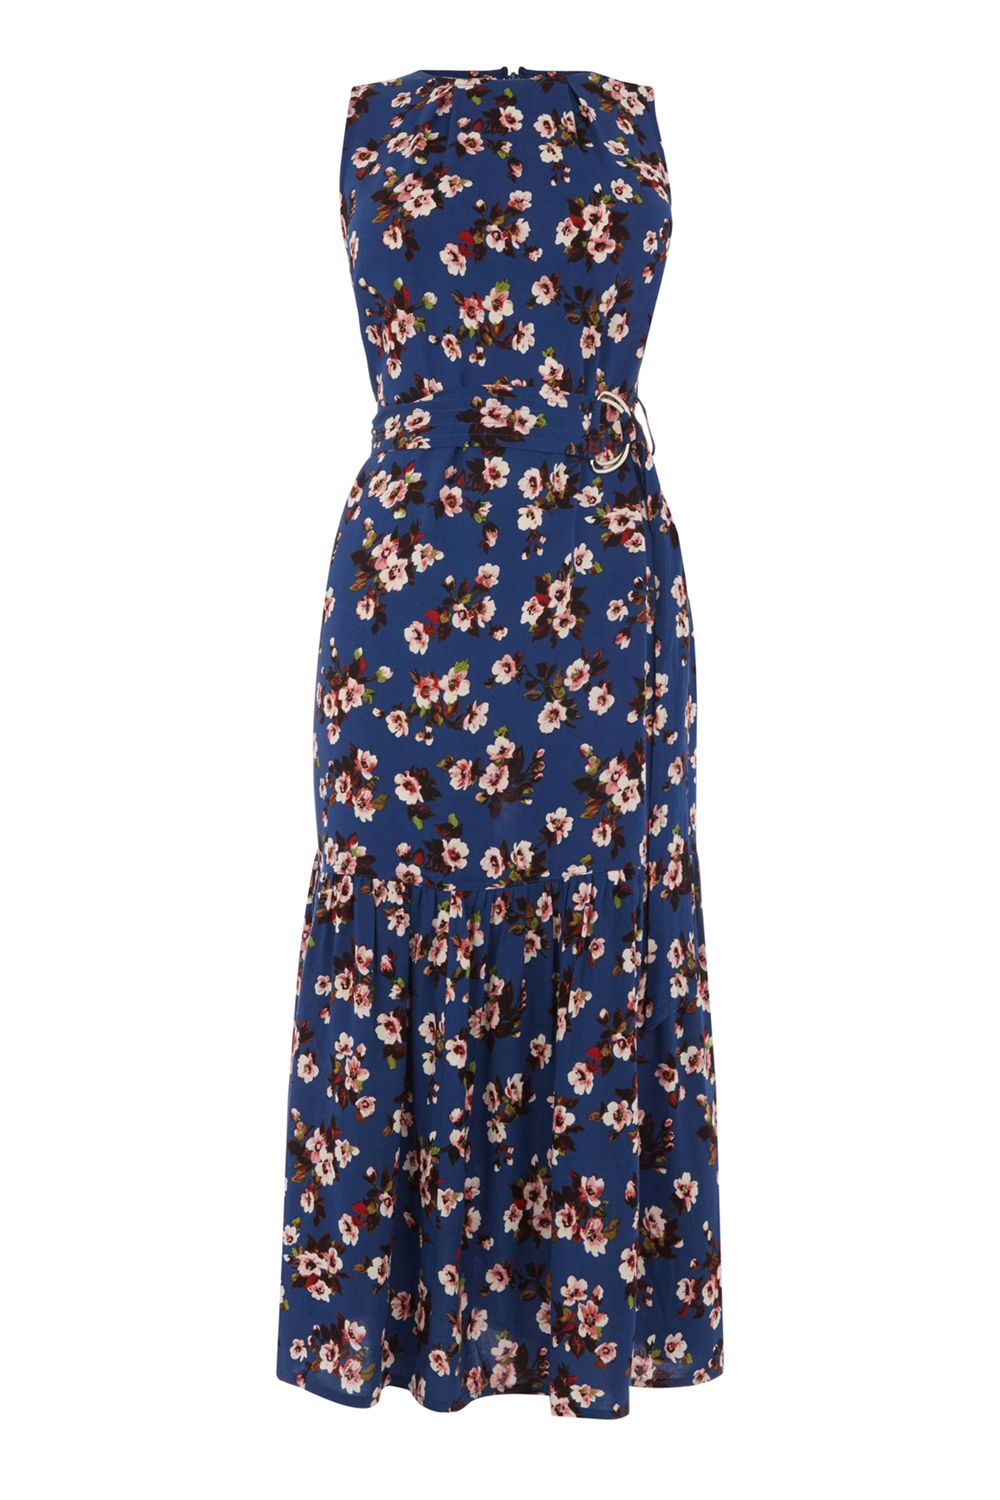 Warehouse Mae Floral Midi Dress, Blue